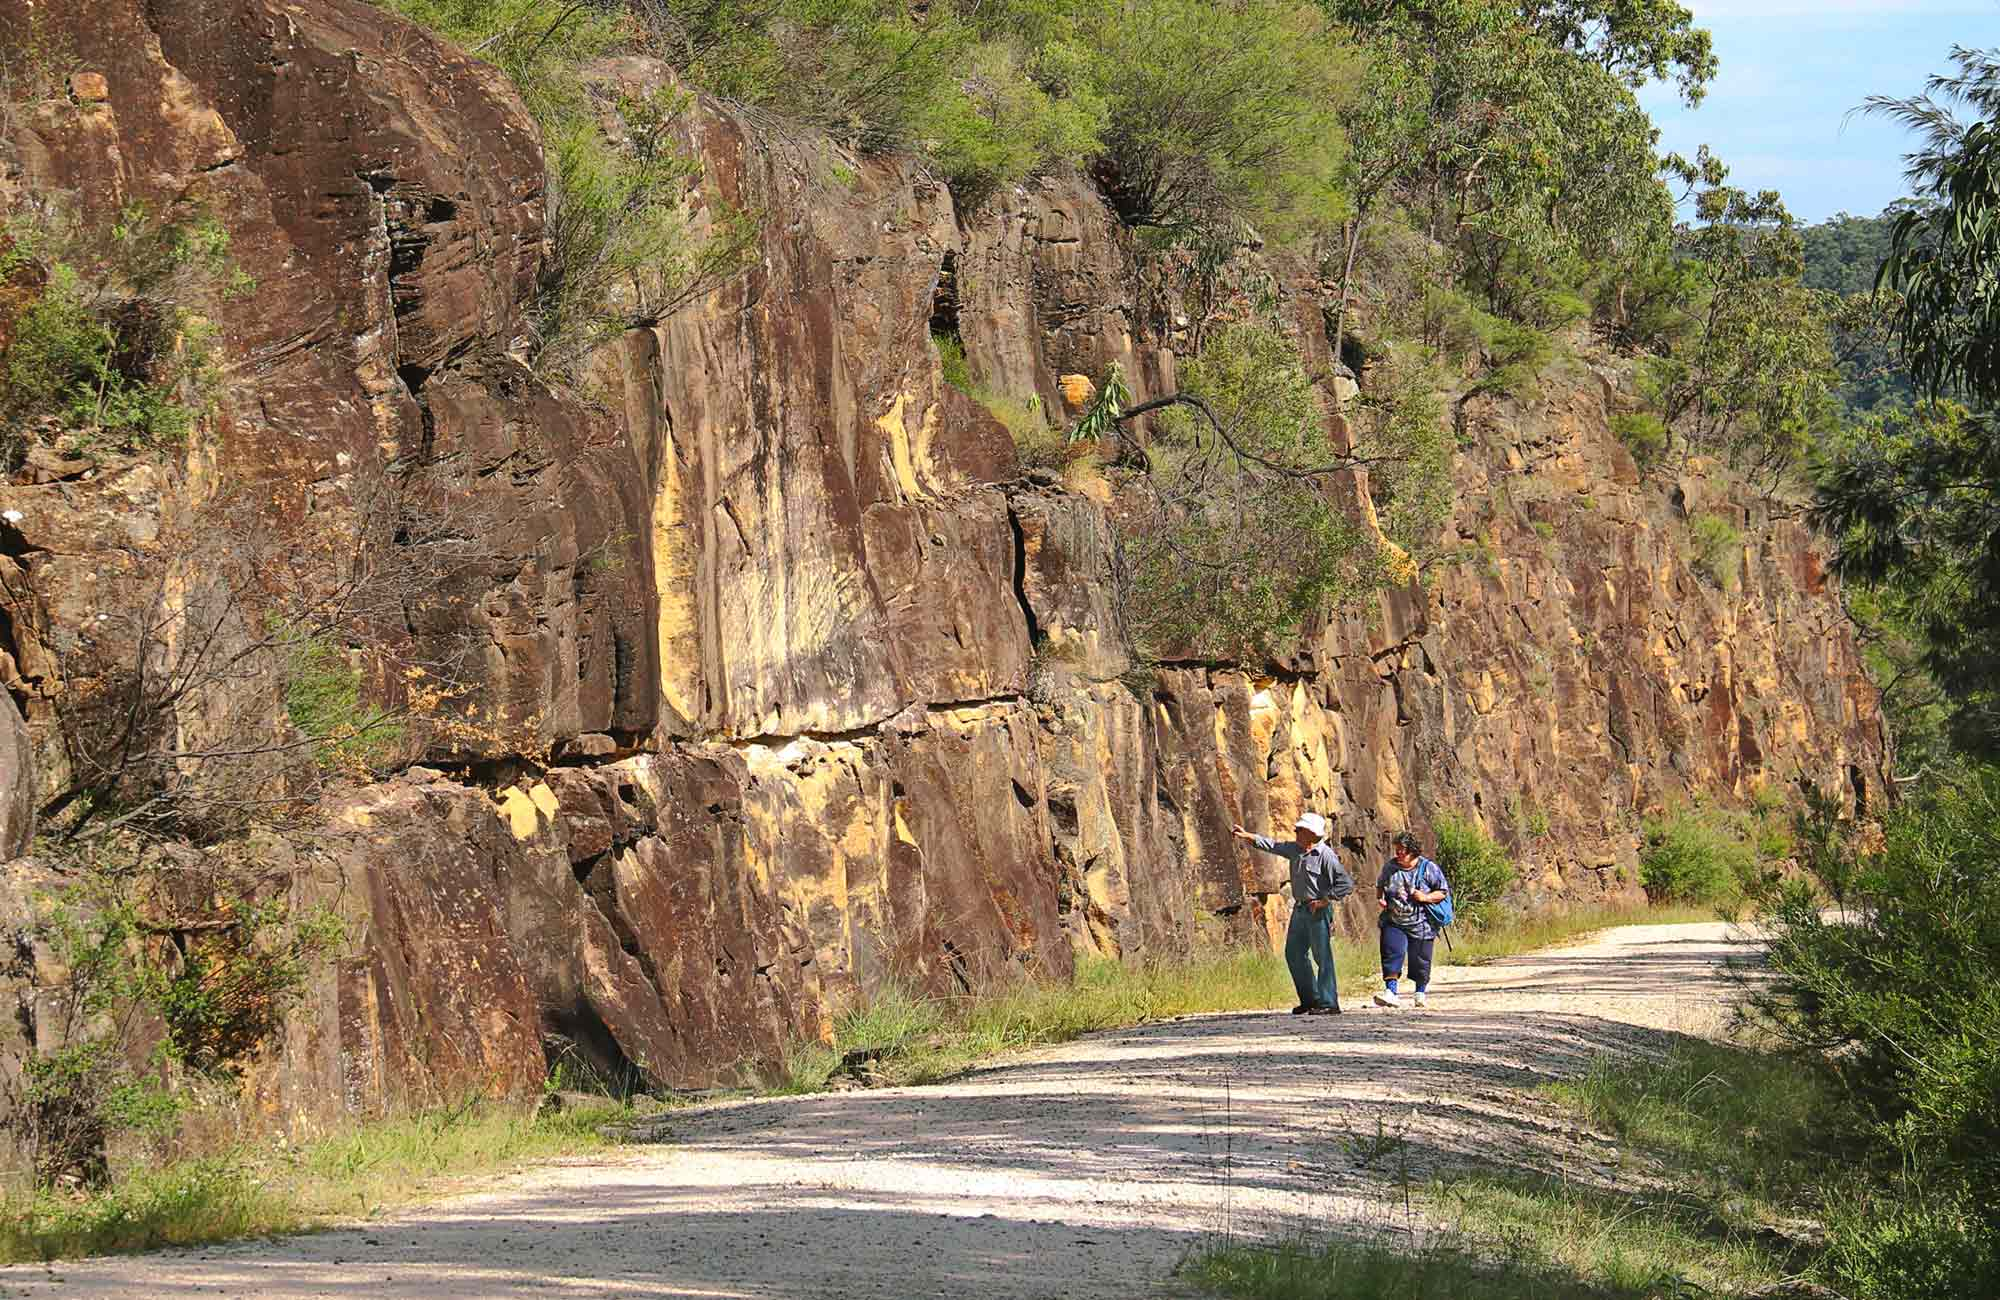 People walking along the track with high cliffs. Photo: John Yurasek